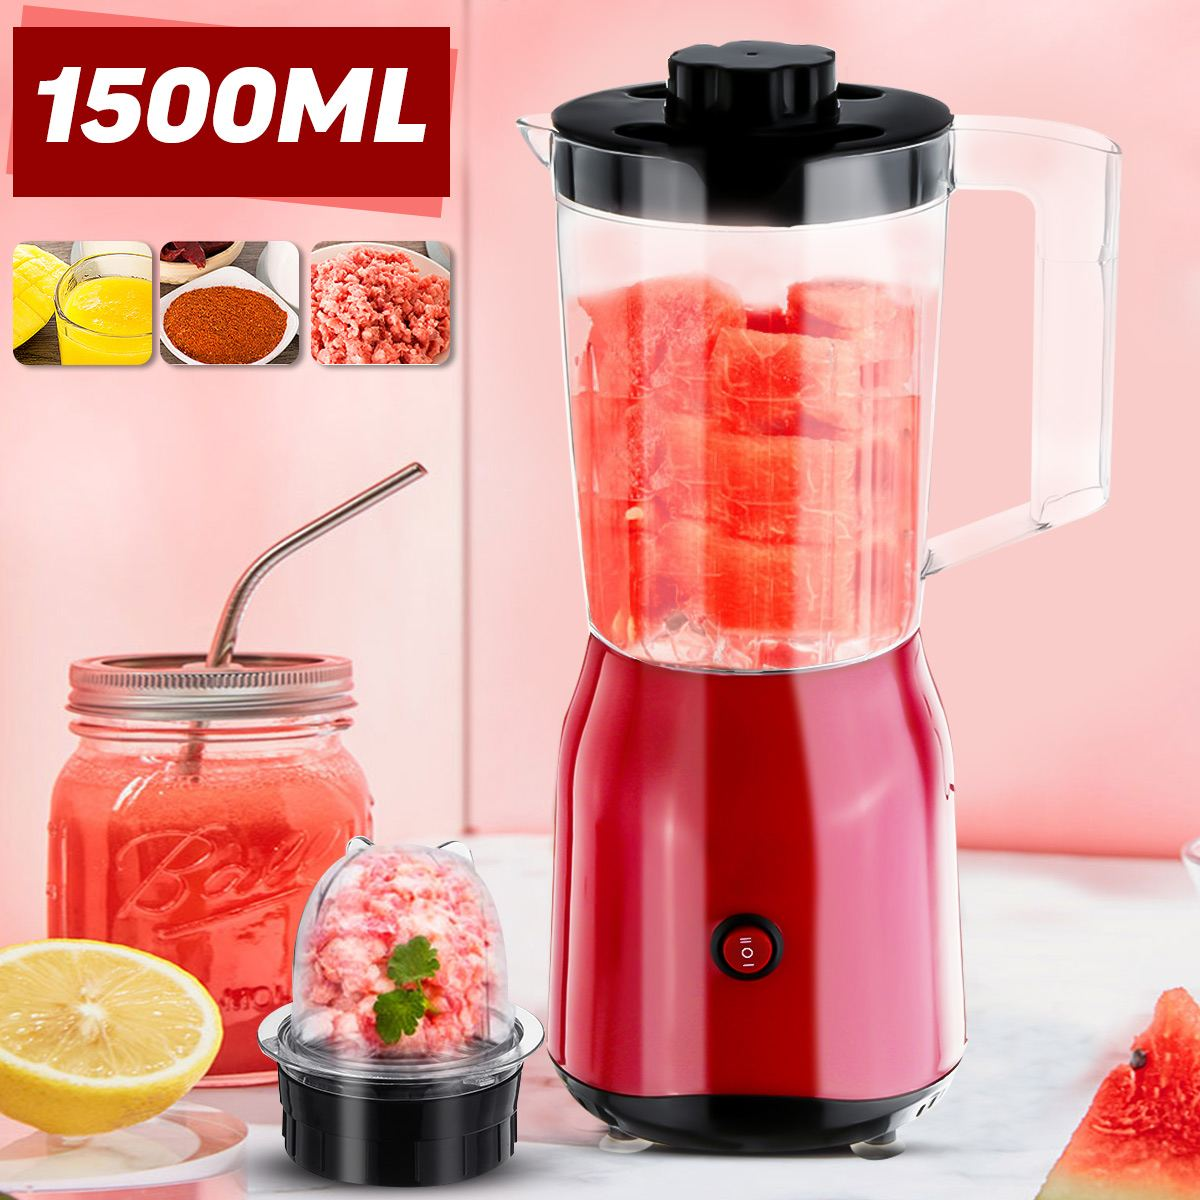 1500ml 220V 2 Stall Multi-functional Nutrition Machine Juice Blenders Fruit Juicer Mixer Timer-Blenders Ice-Crusher Food-Process